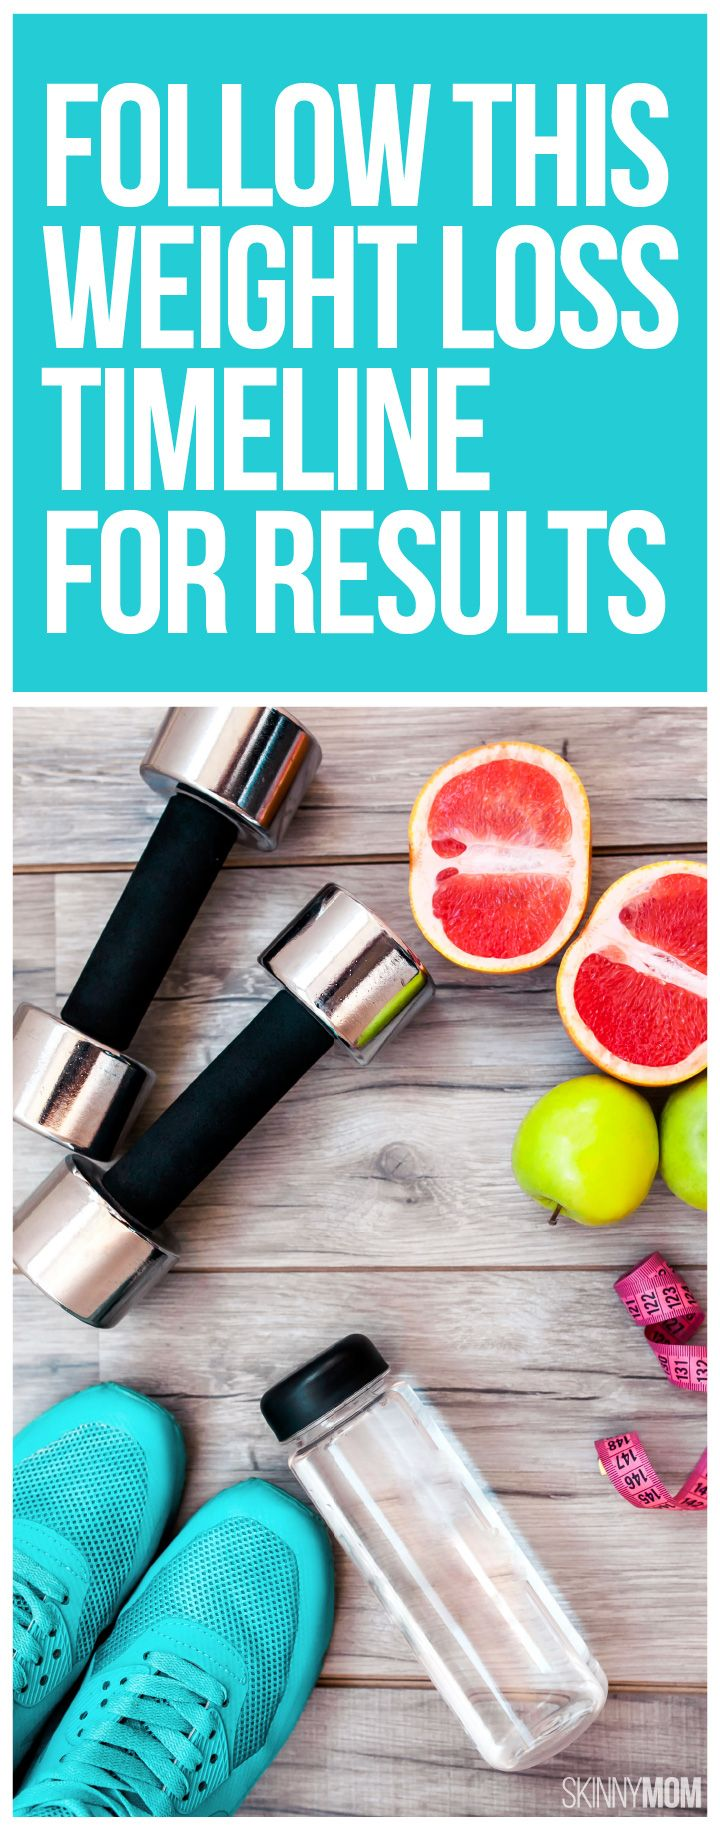 A weight loss timeline to help you hit all your goals.